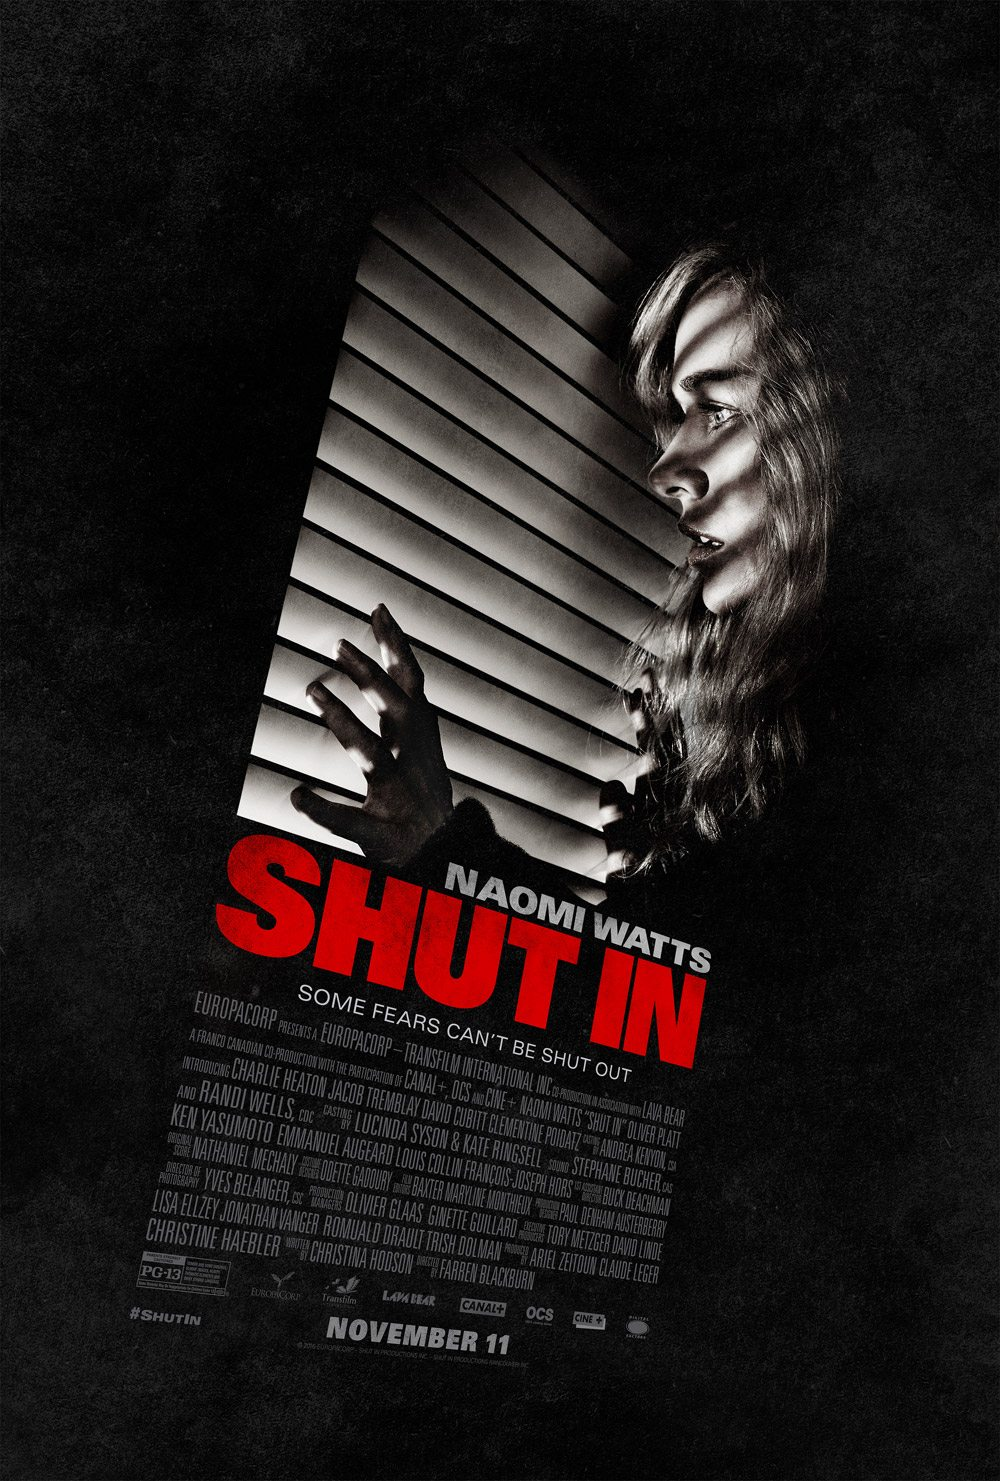 shut in - Nightmarish New Shut In Clip